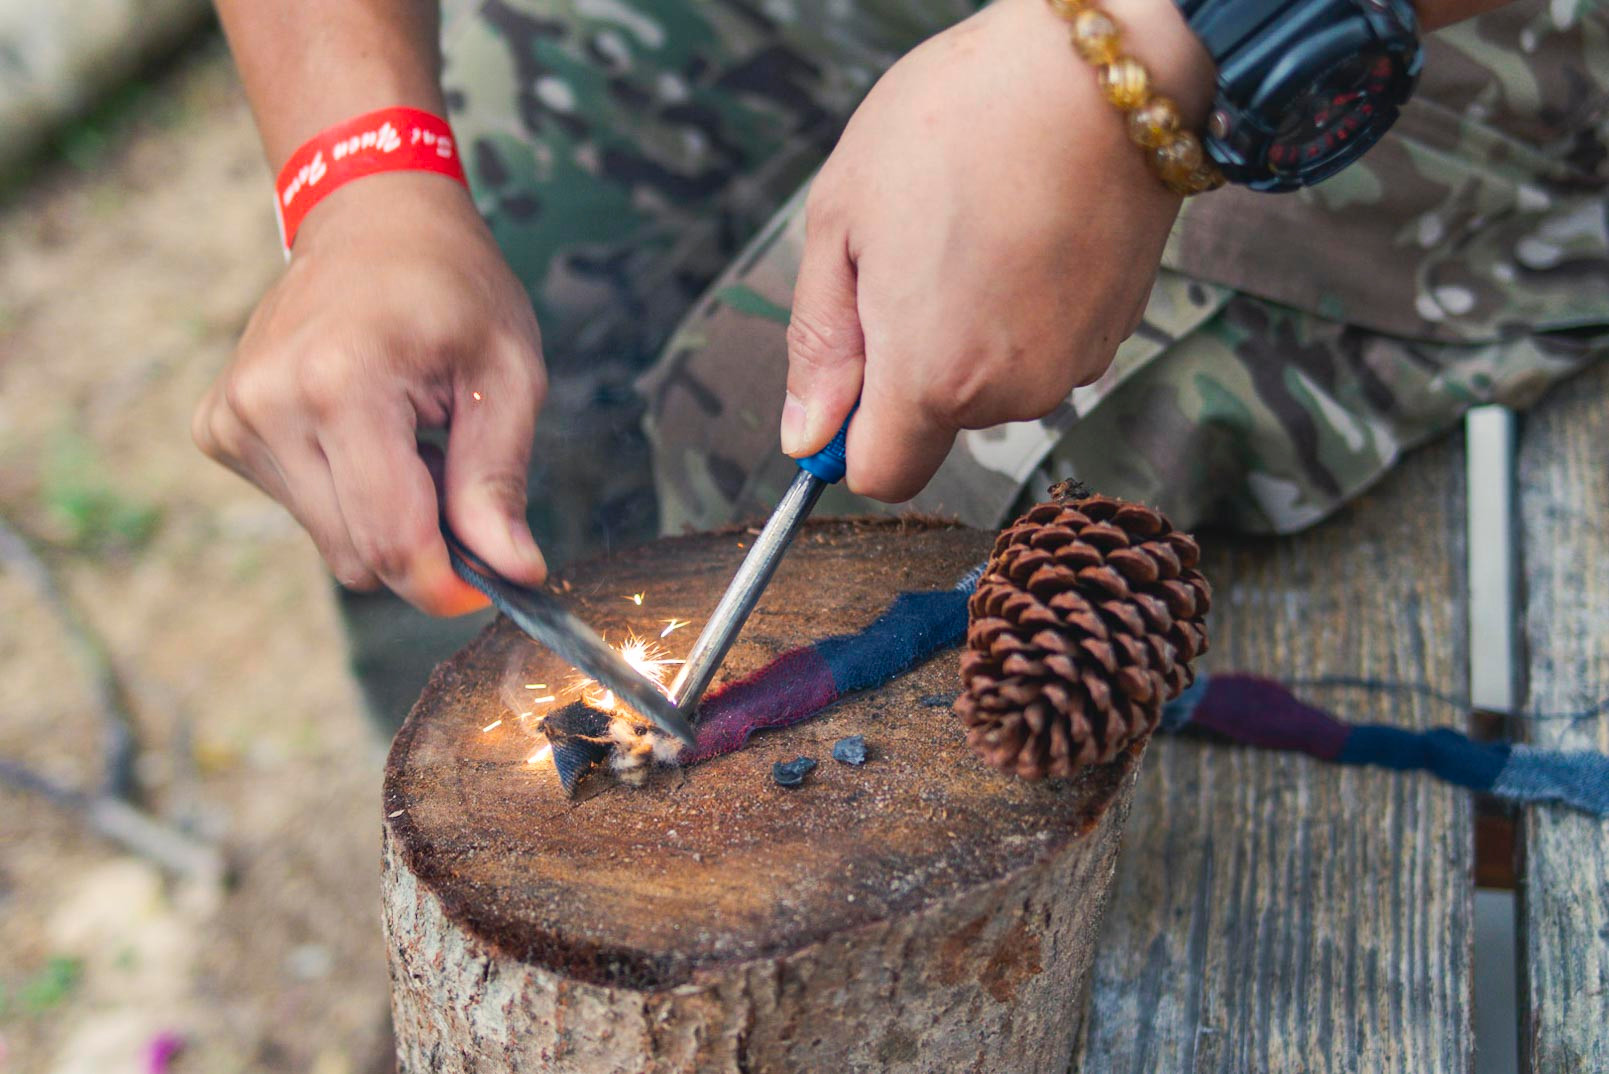 BE A CAMPER! Spring Equinox Camping Experience Festival 2019 Event Photos